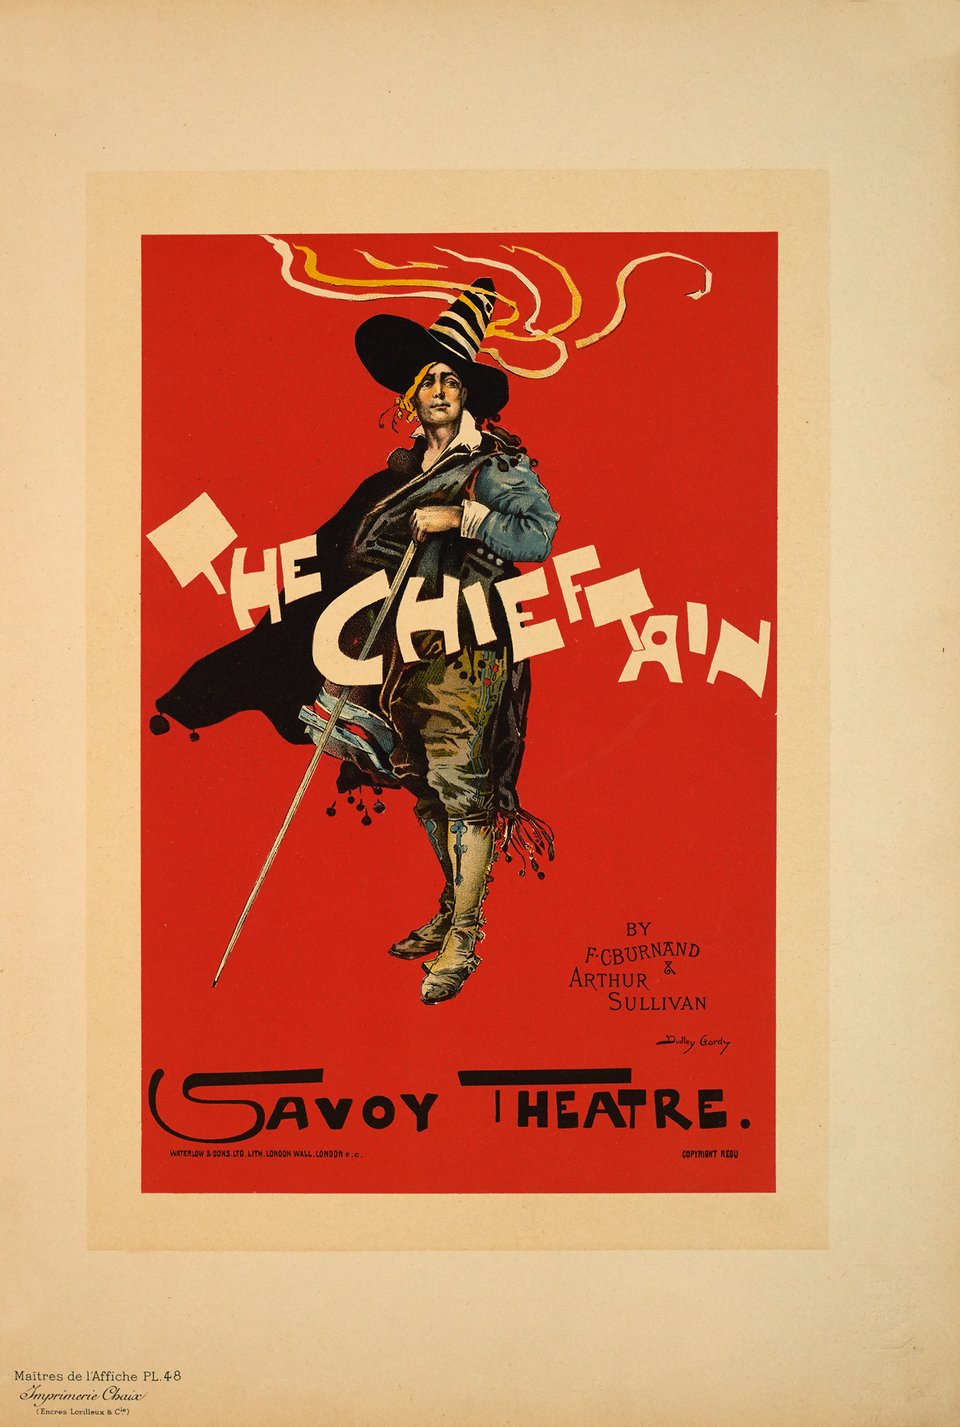 The Chieftain, Savoy Theatre – Vintage poster – Hardy DUDLEY – 1896